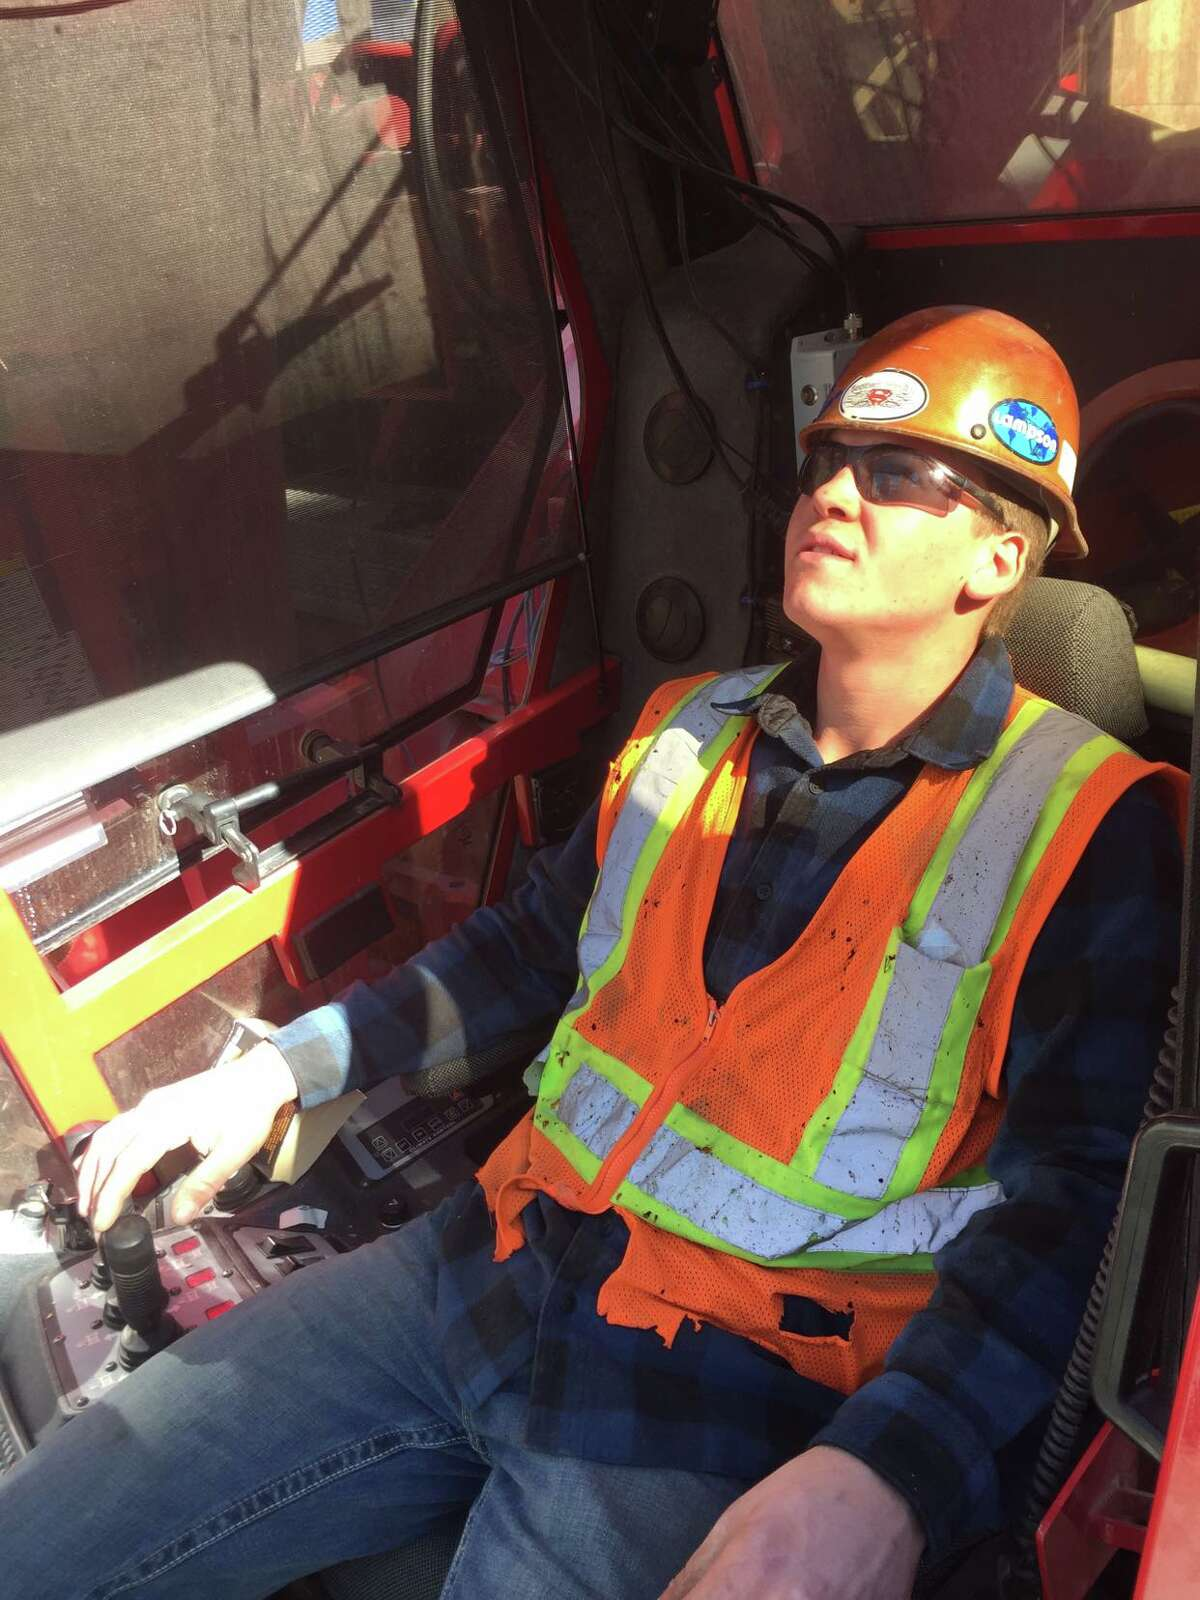 Tommy Leppien of Midland has traveled around the country working on different construction sites. He obtained his crane operator license over a year ago.